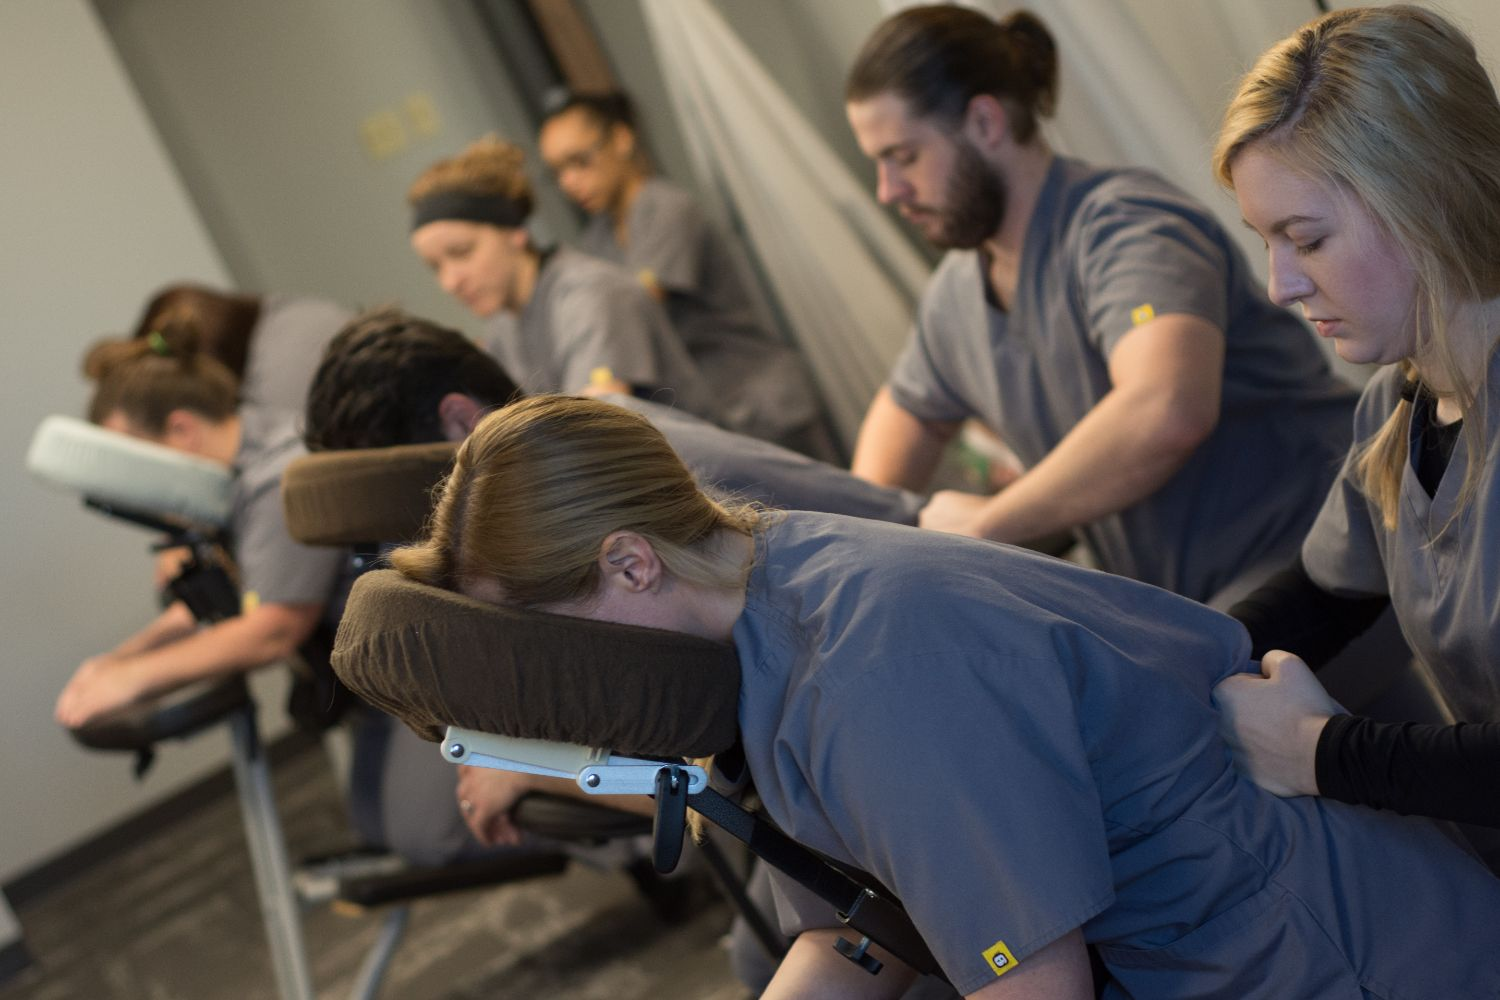 This is an image of massage students in massage chairs receiving massages from other students to practice their skills.